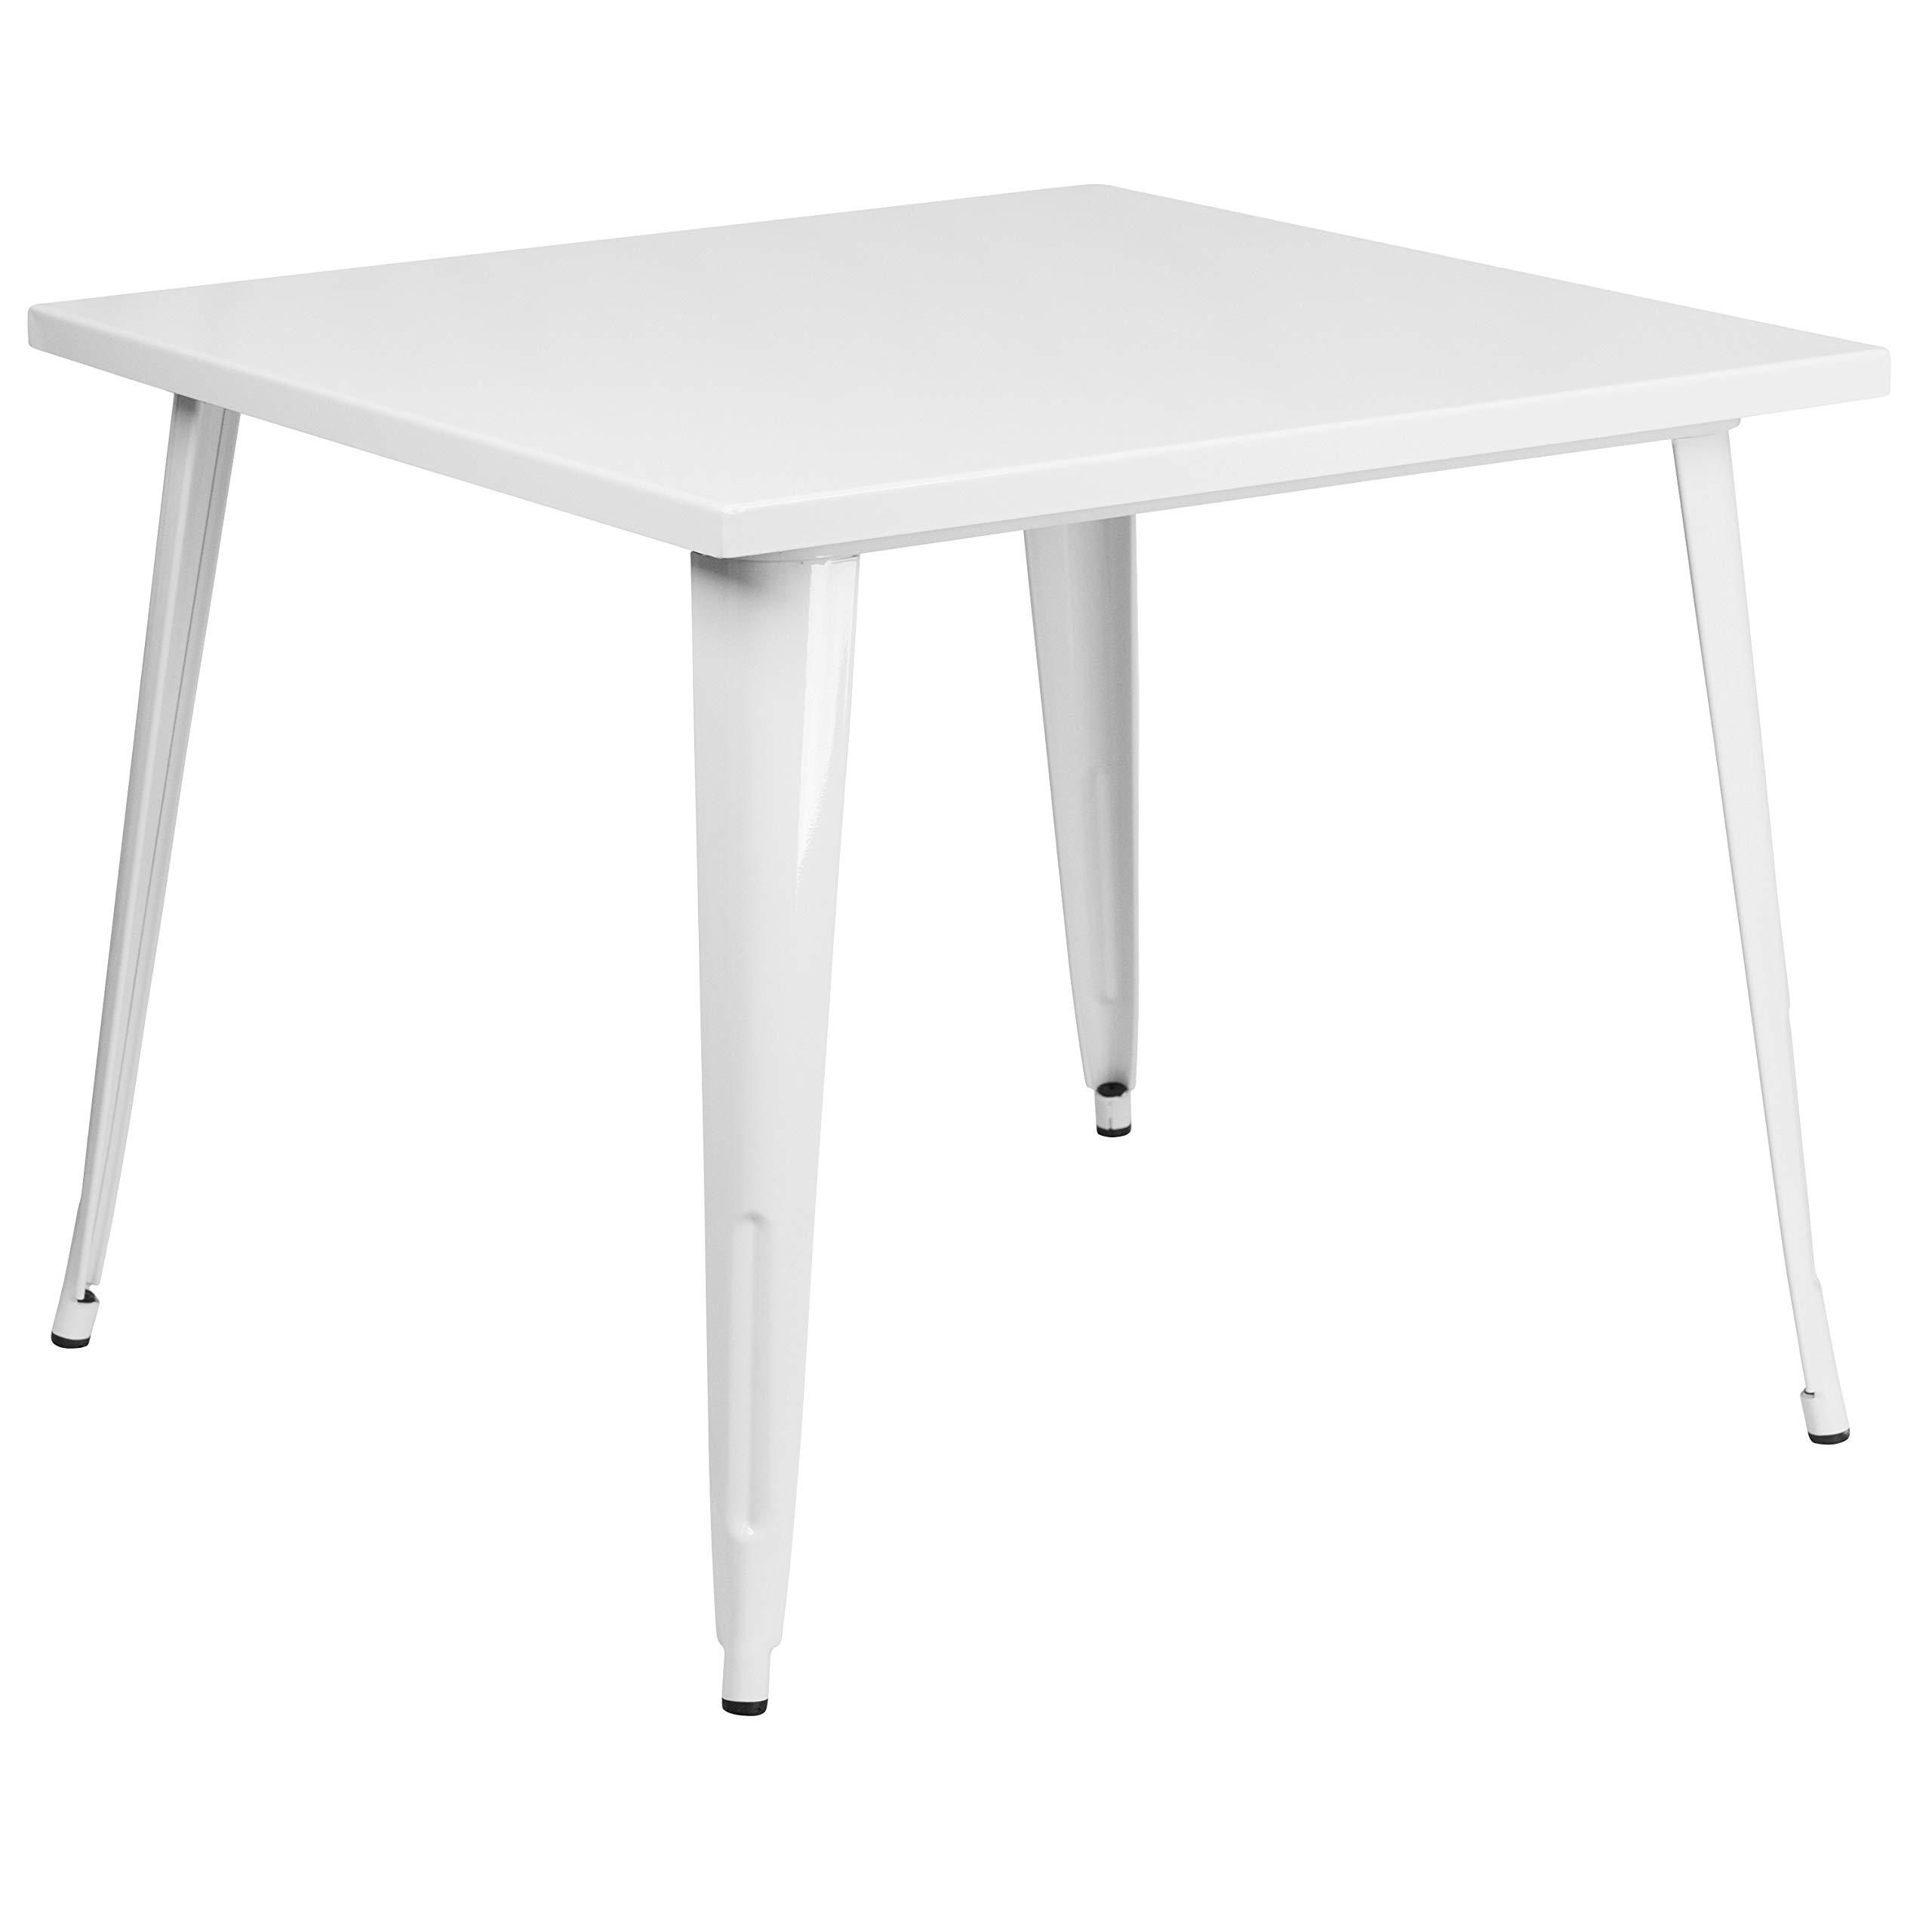 MFO 35.5'' Square White Metal Indoor-Outdoor Table by My Friendly Office